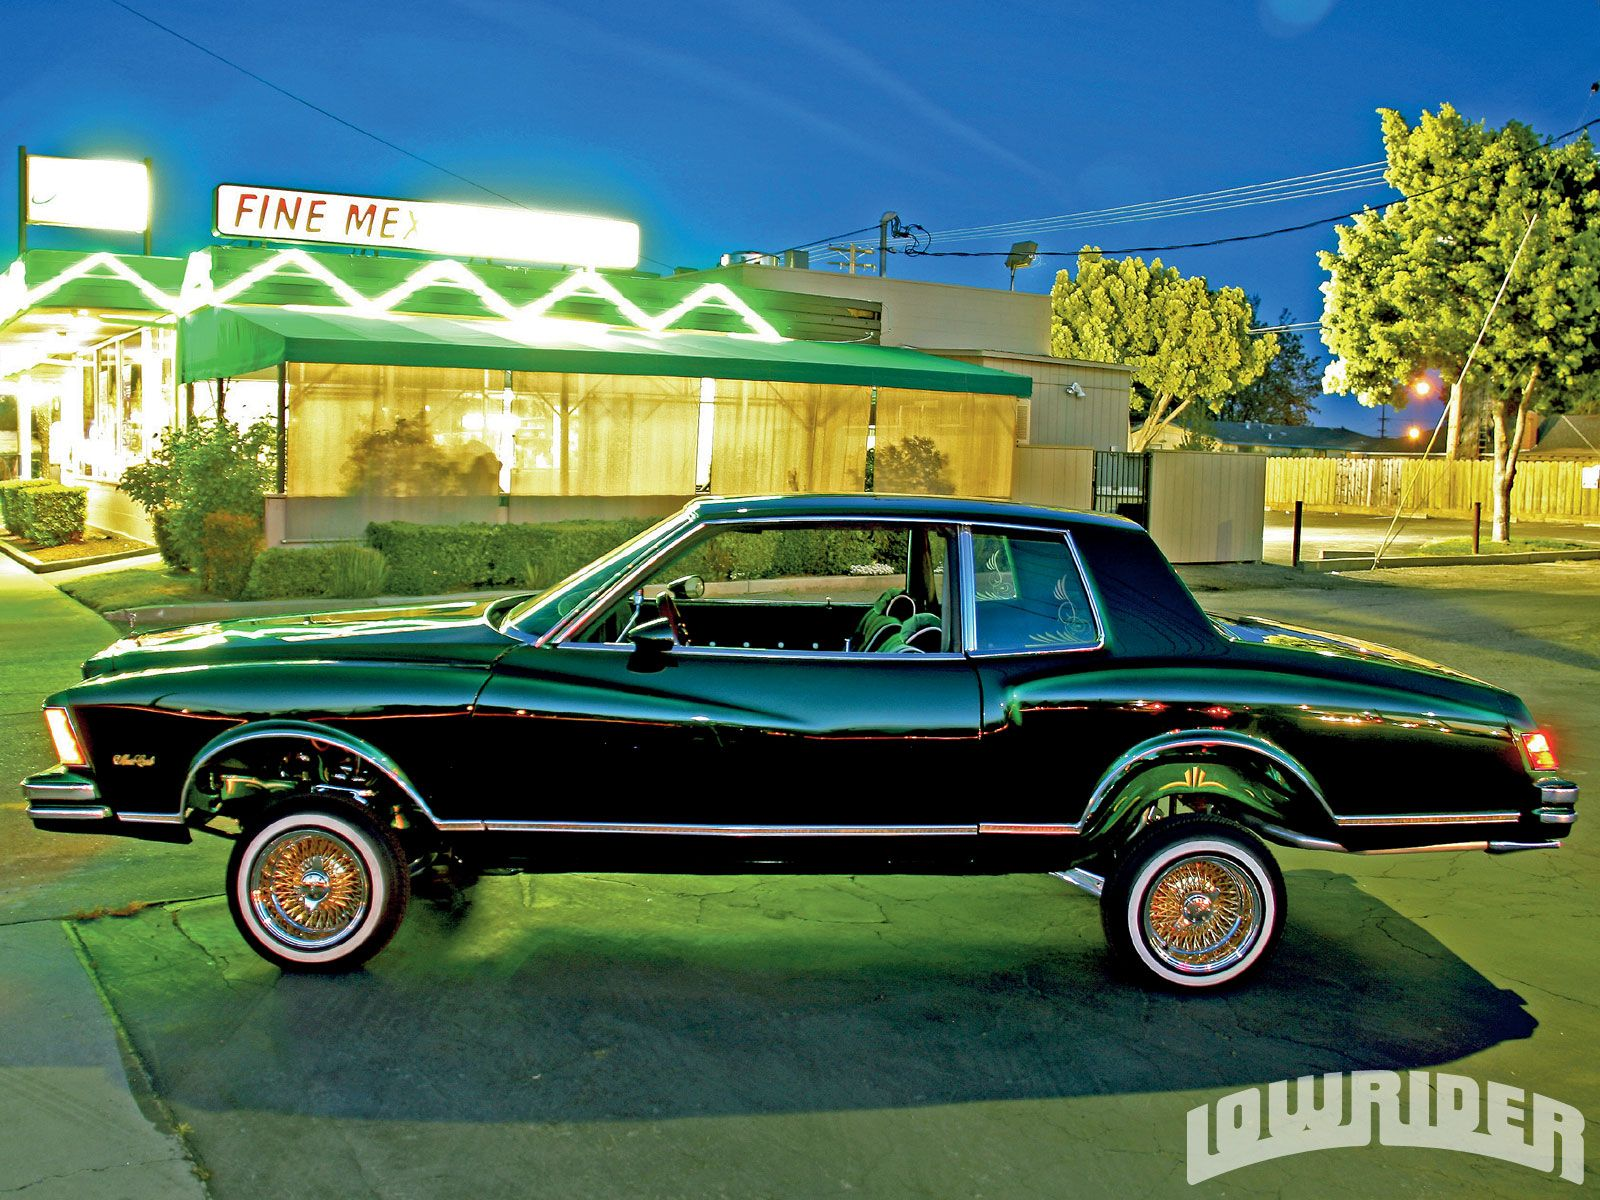 Being fueled by the desire to do better at the shows osvaldo ibarra took his 1979 chevrolet monte carlo a step above the rest